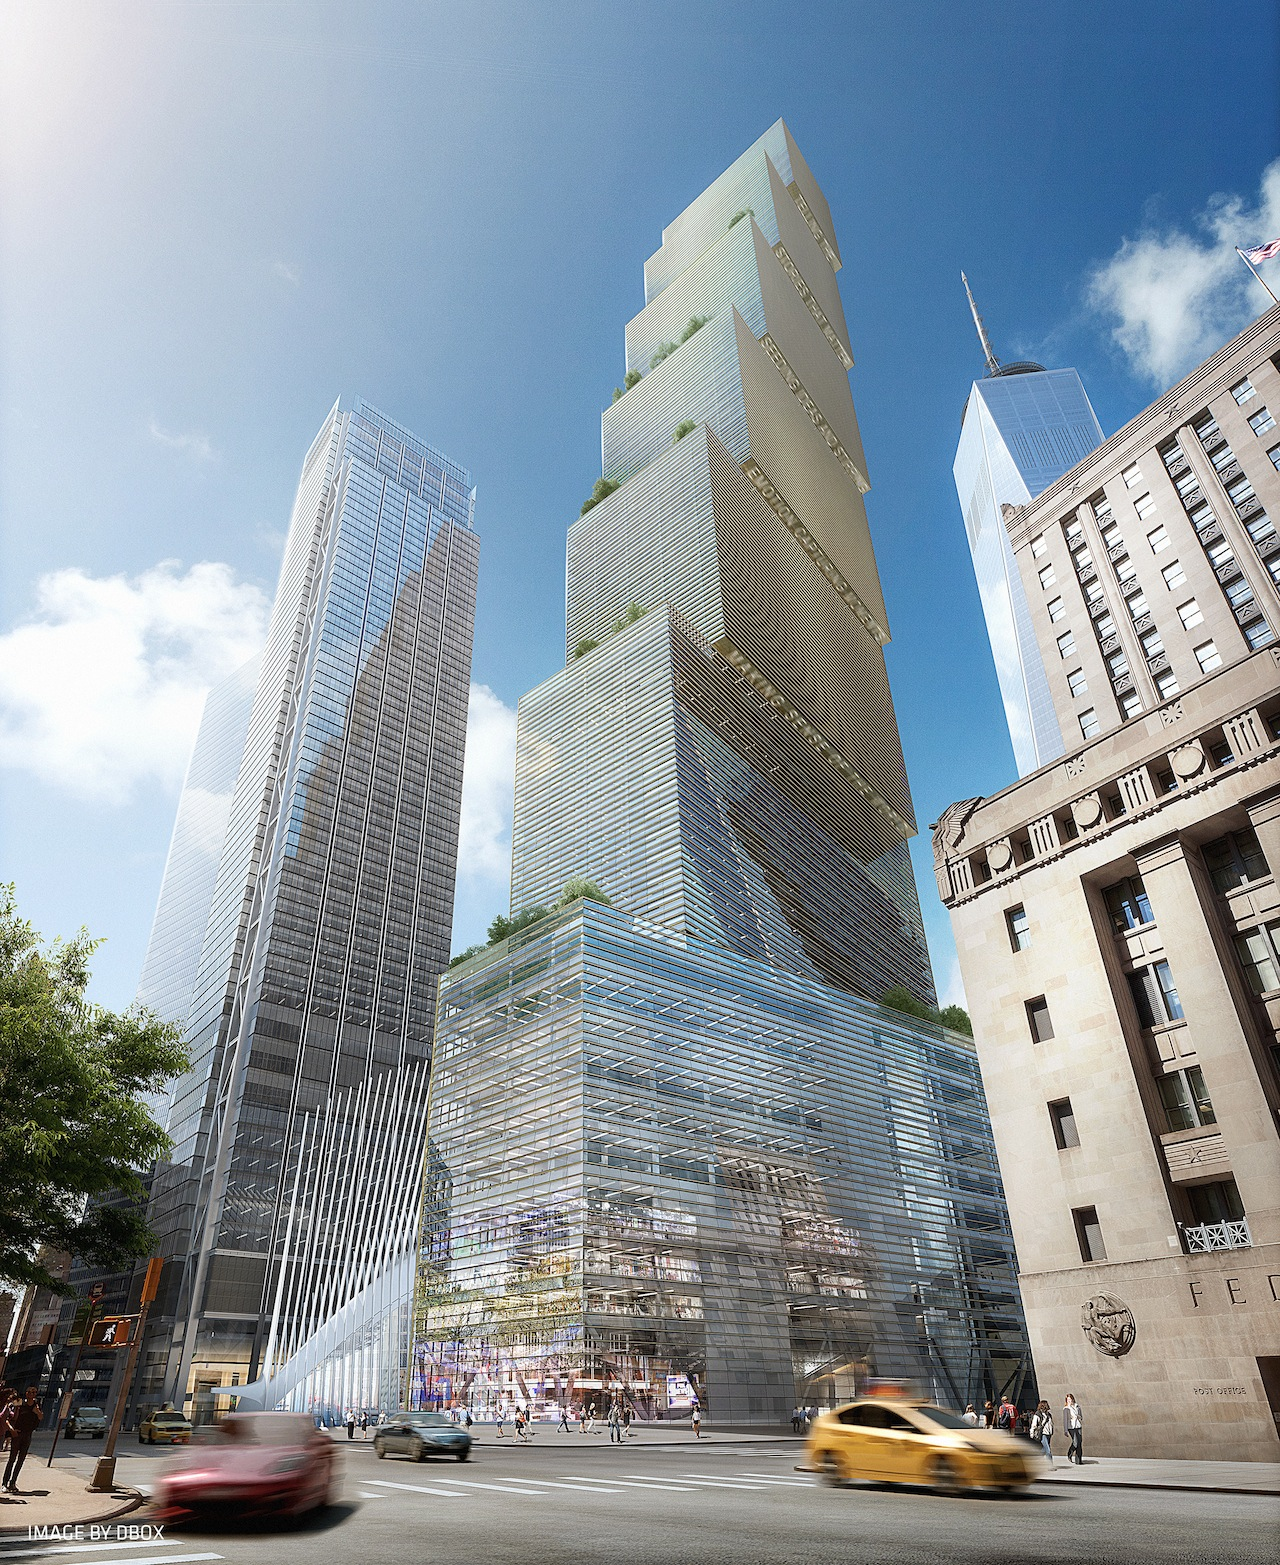 Home Spa Design Ideas: The Design For 2 WTC And The Dangers Of Building